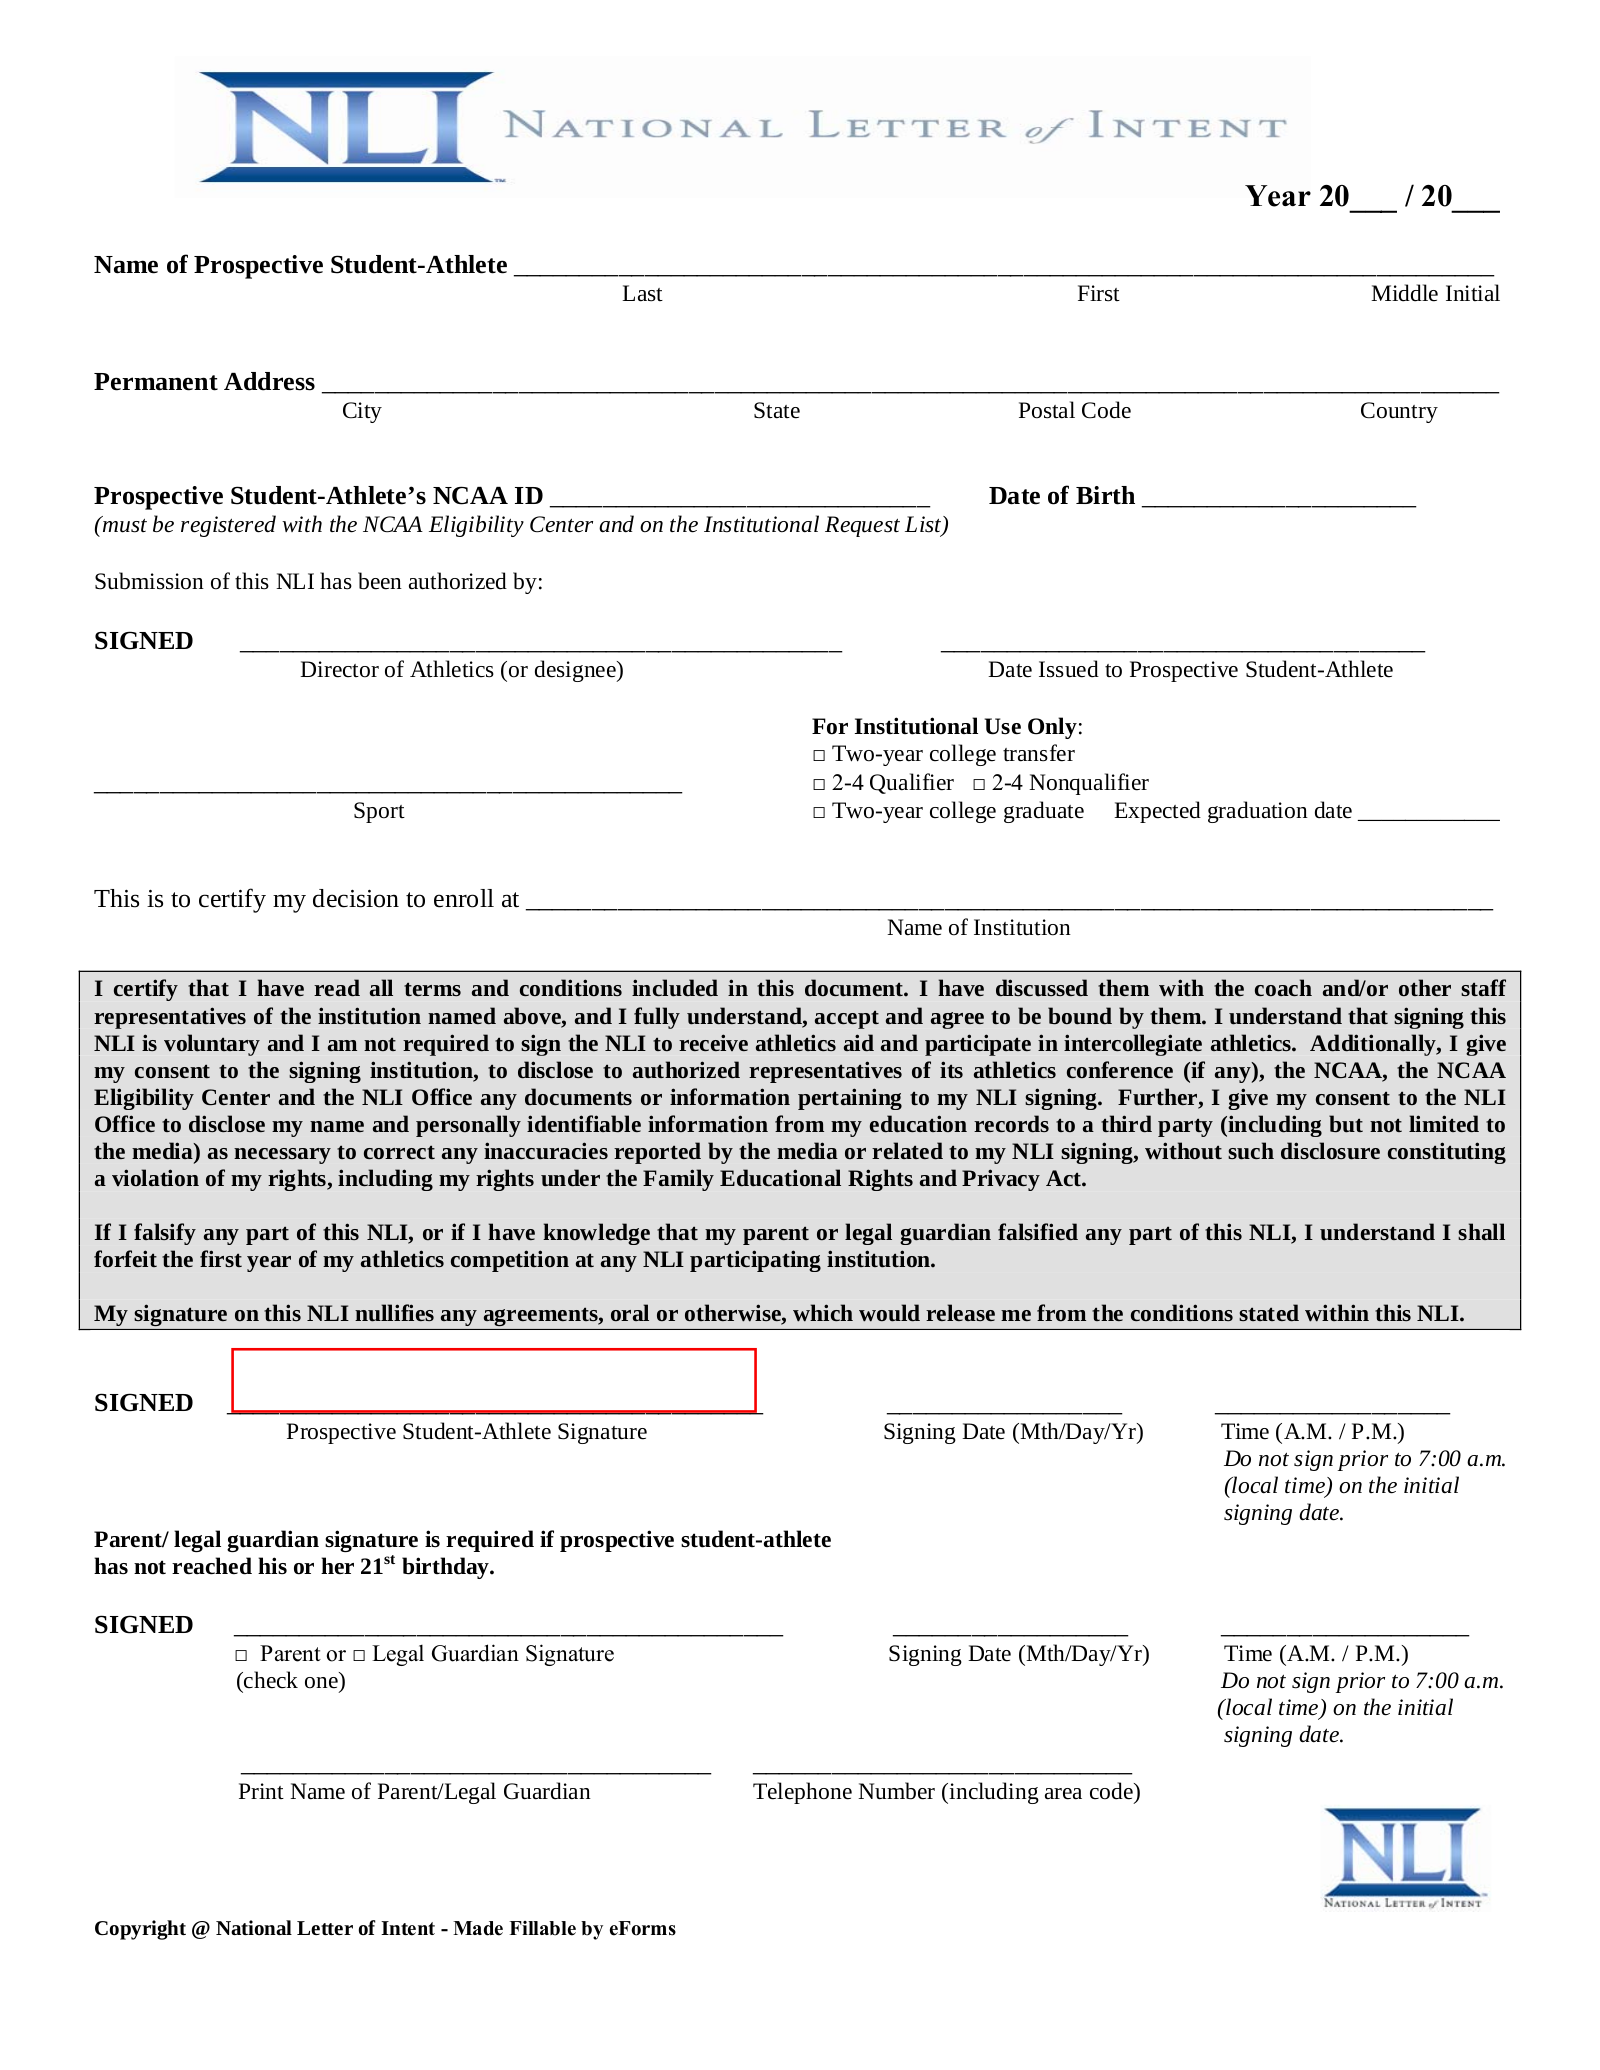 Letter Of Intent Forms from eforms.com